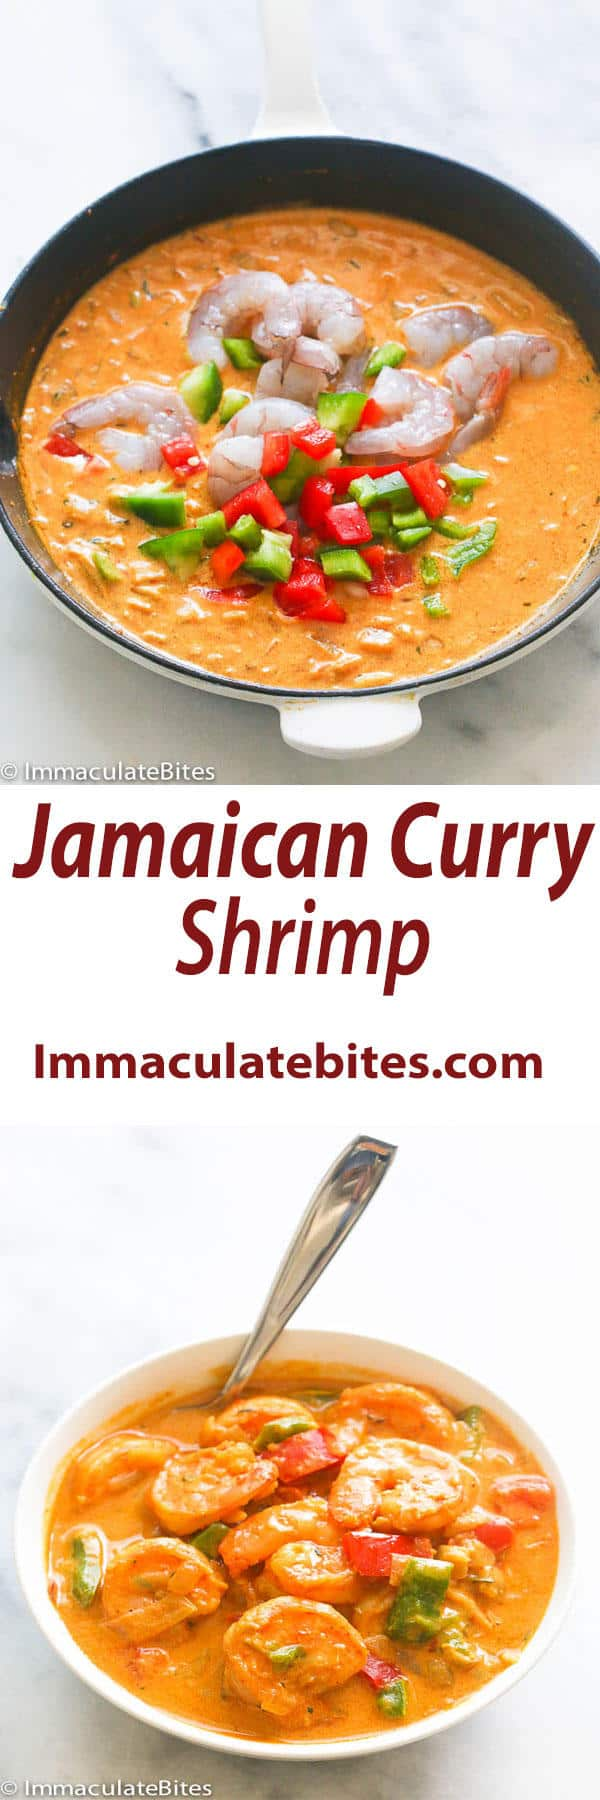 Jamaican-curry-shrimp